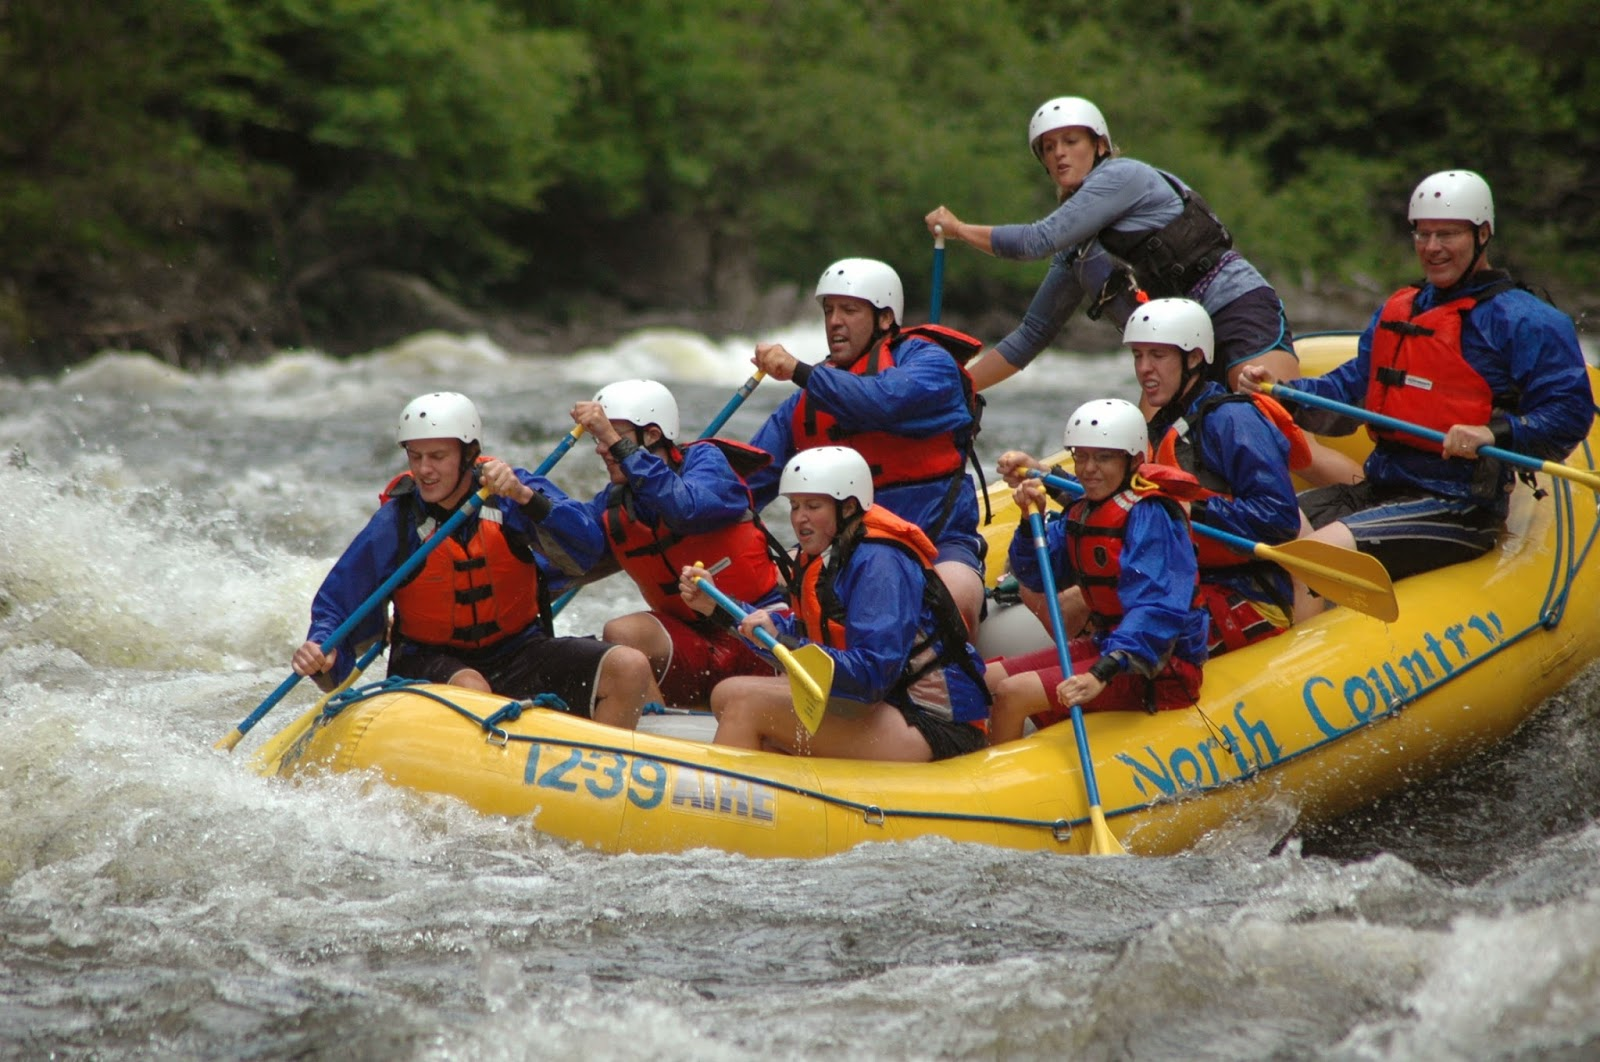 Boys in the Good: White Water Rafting, Kennebunk River, Maine